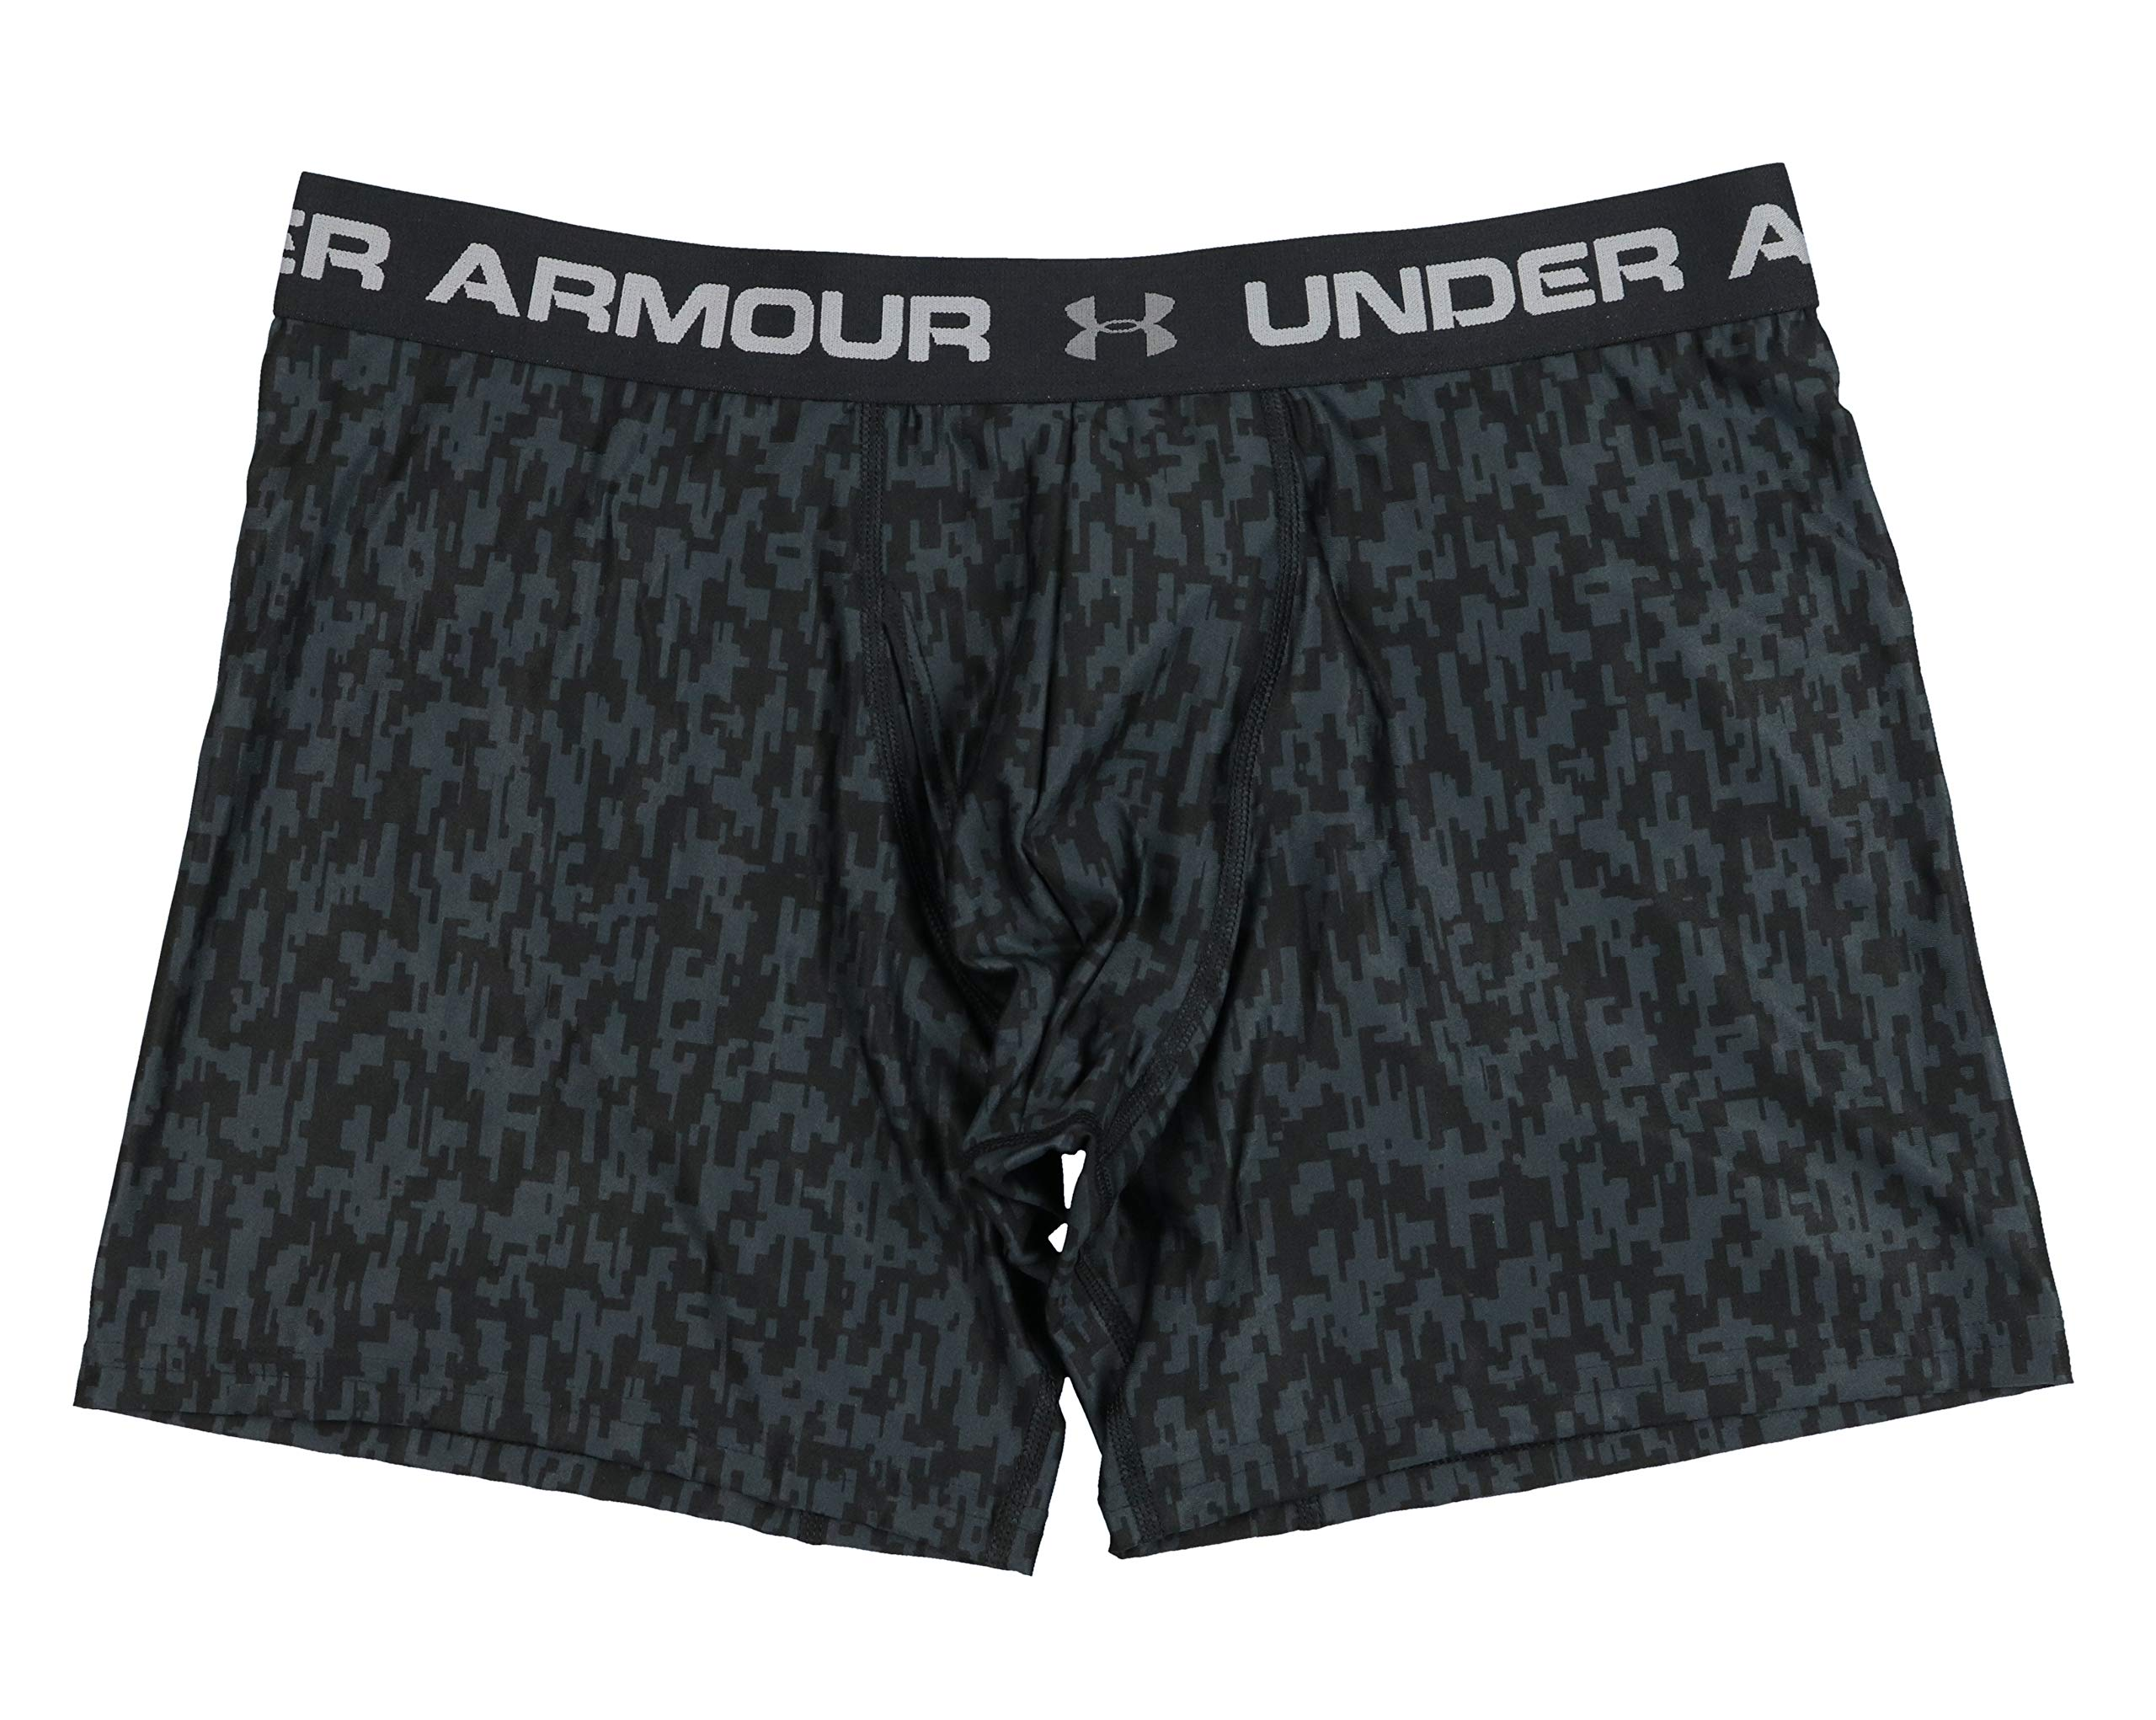 Under Armour Men's Printed Original 6'' Boxerjock Boxer Brief (Large, Black(1293960-004)/Grey) by Under Armour